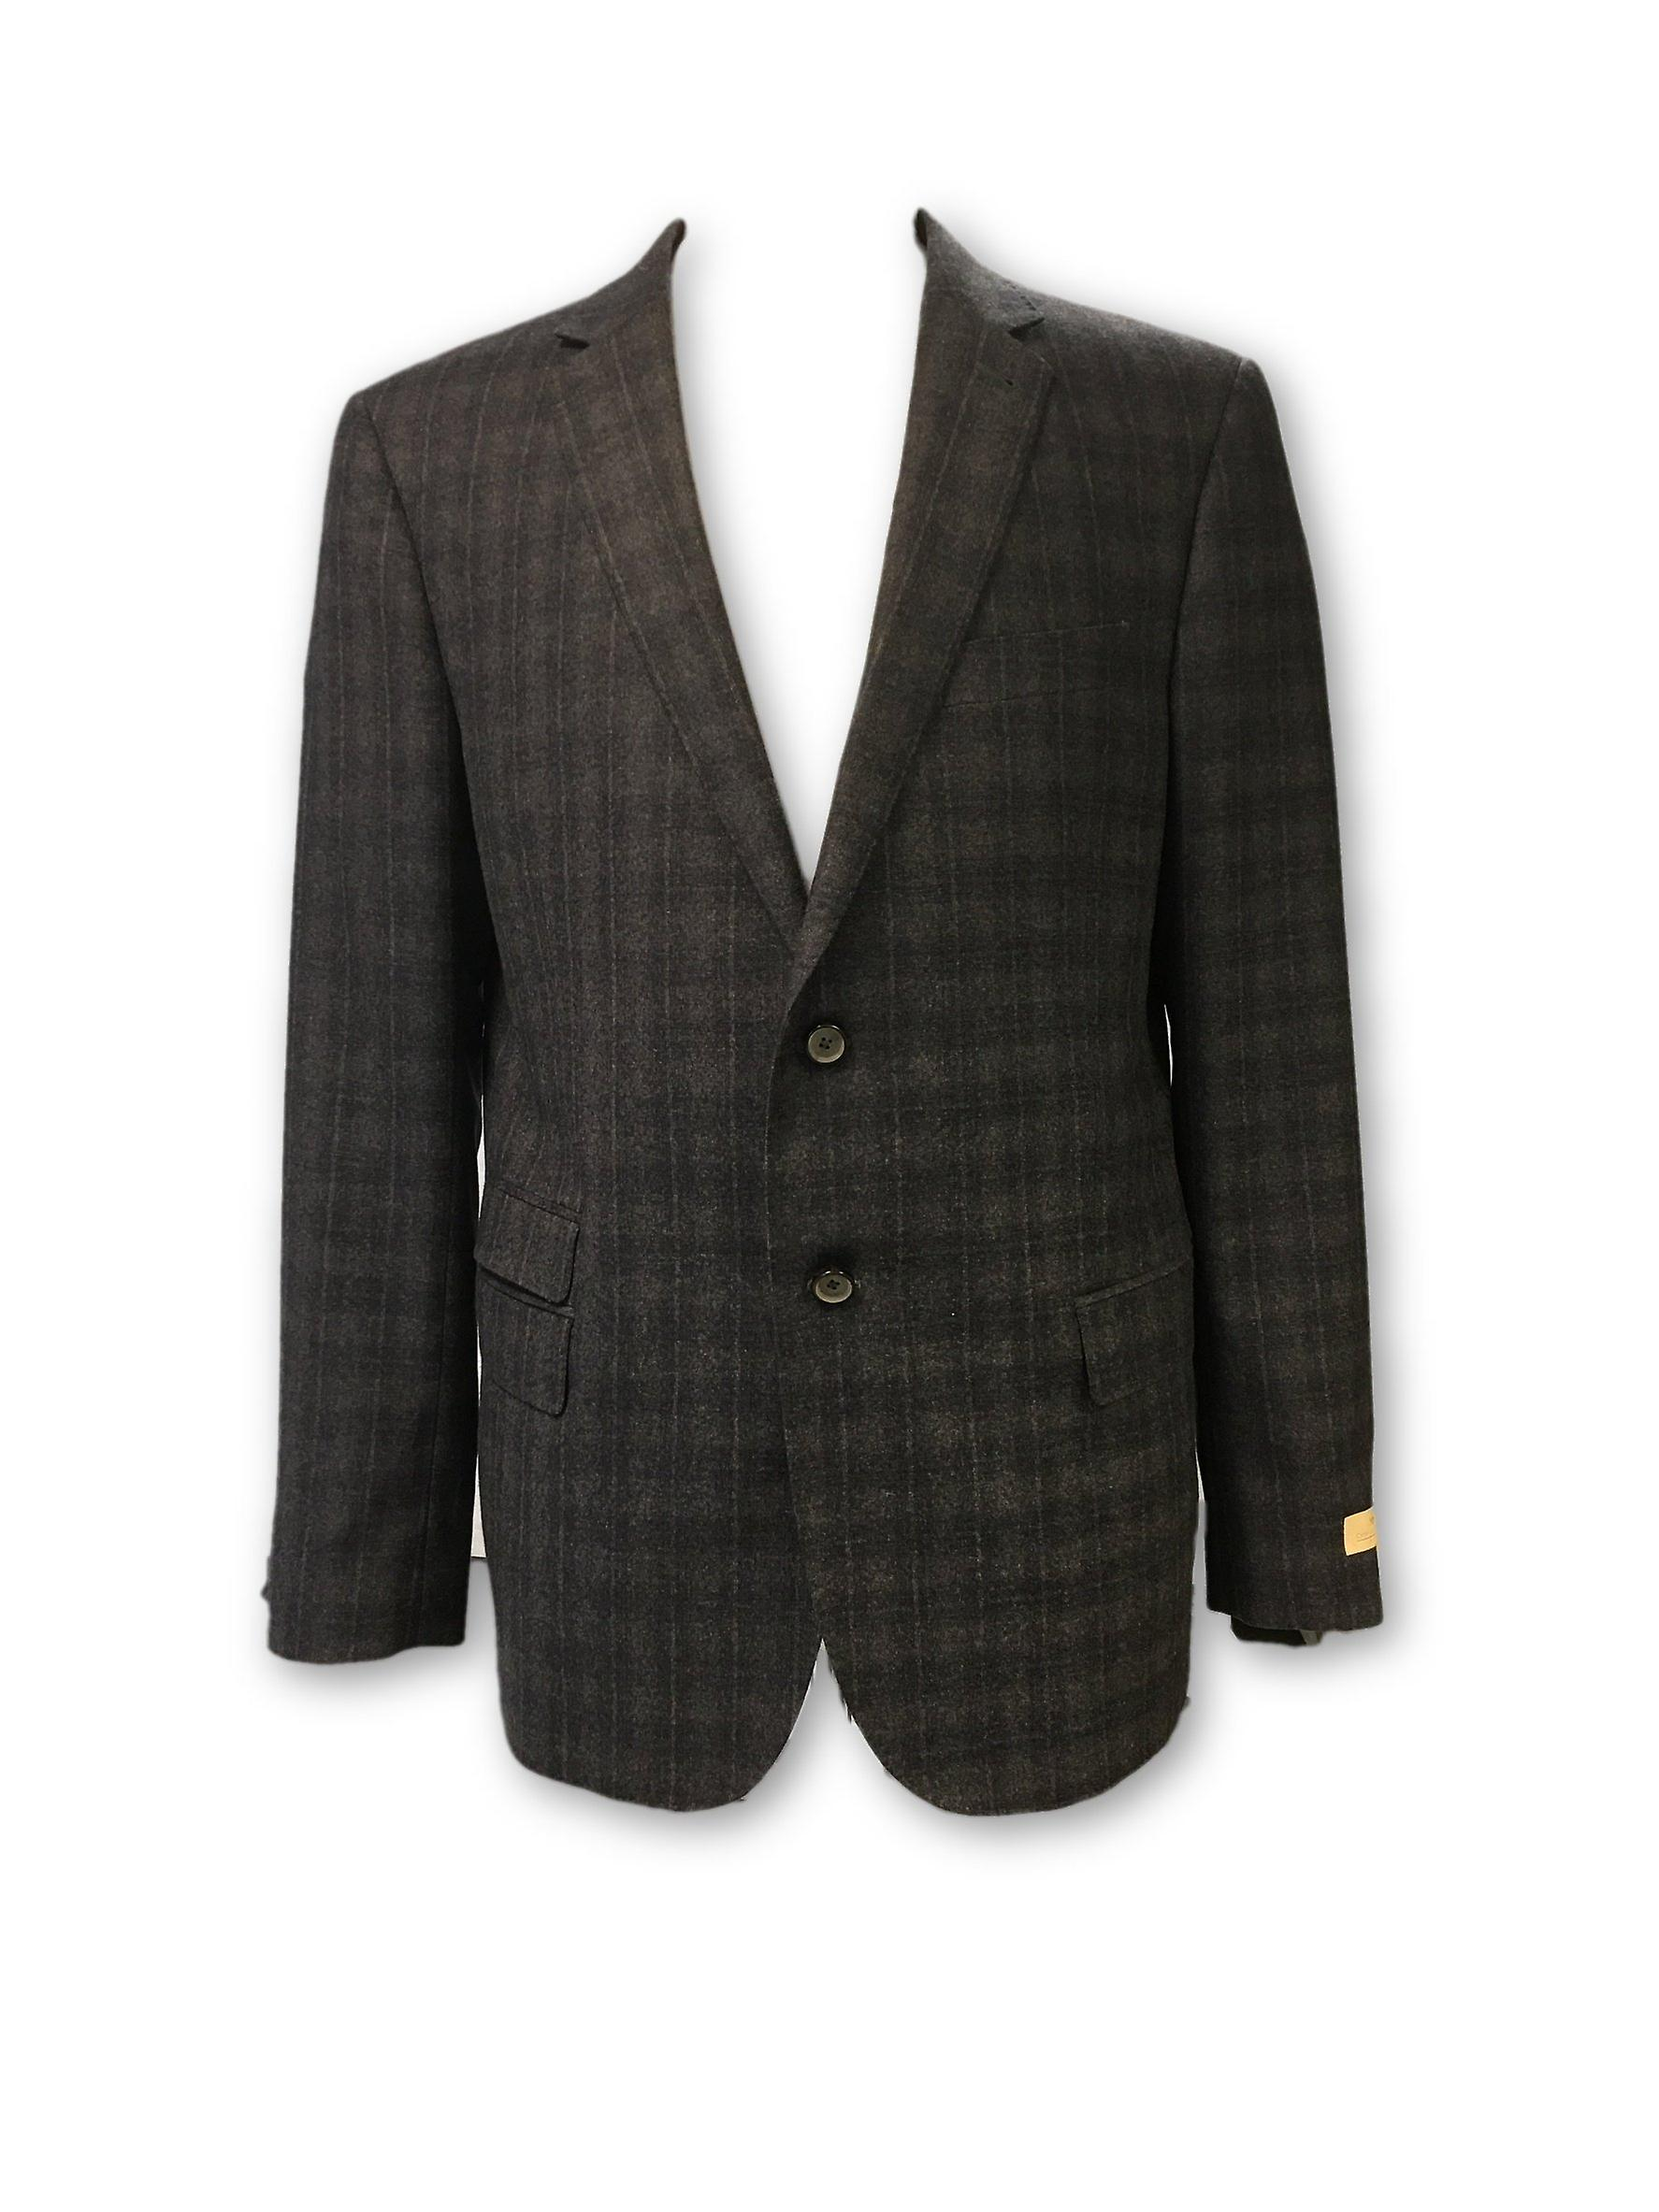 Circle of Gentlemen Dressed Parker 2 piece suit in grey check